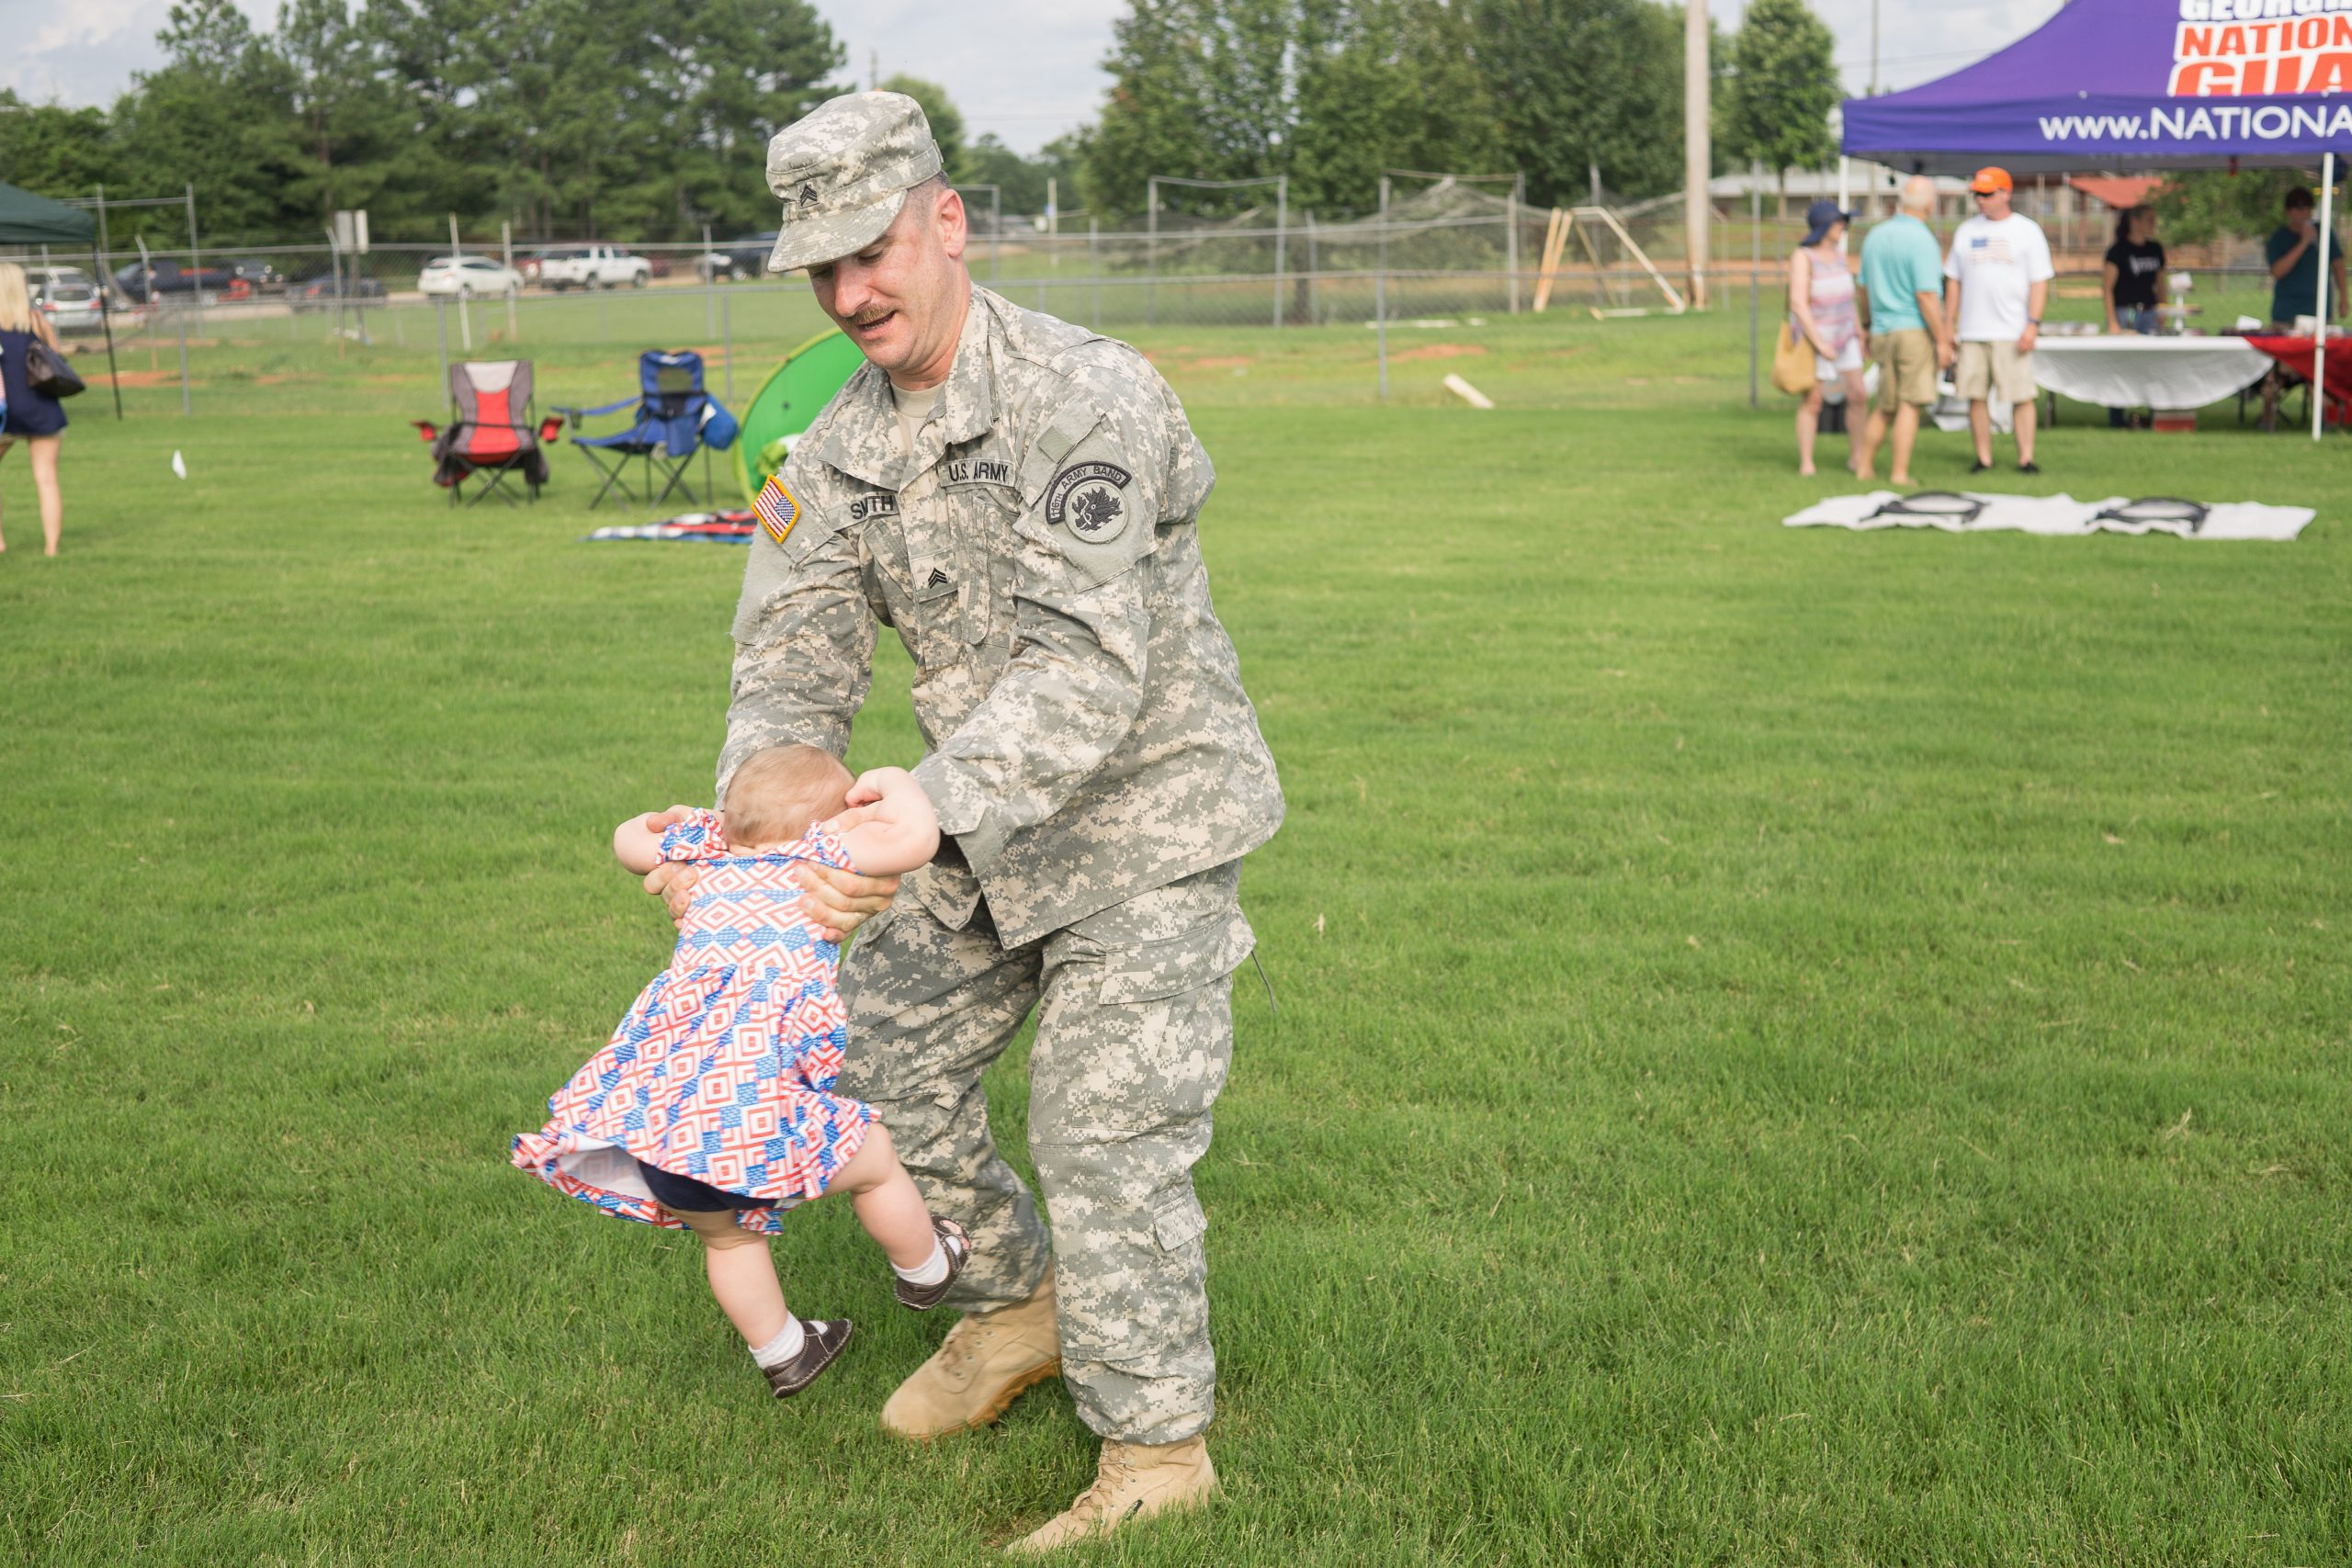 dad in military uniform swinging a small child around on grass